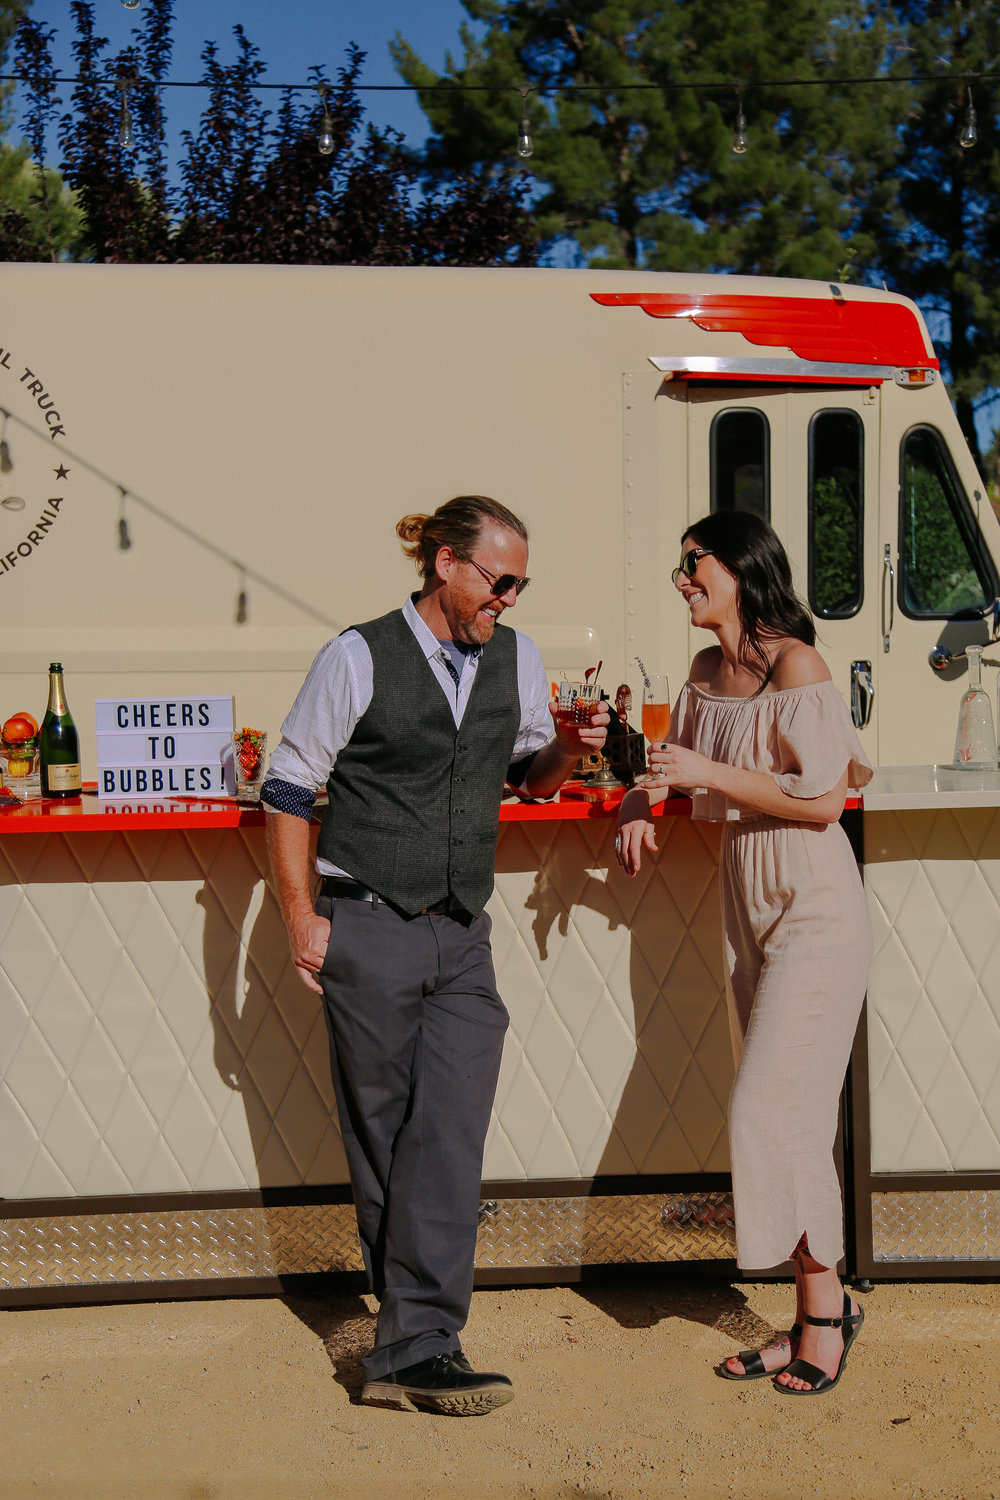 the-hatch-cocktail-truck-kendra-aronson-228.jpg